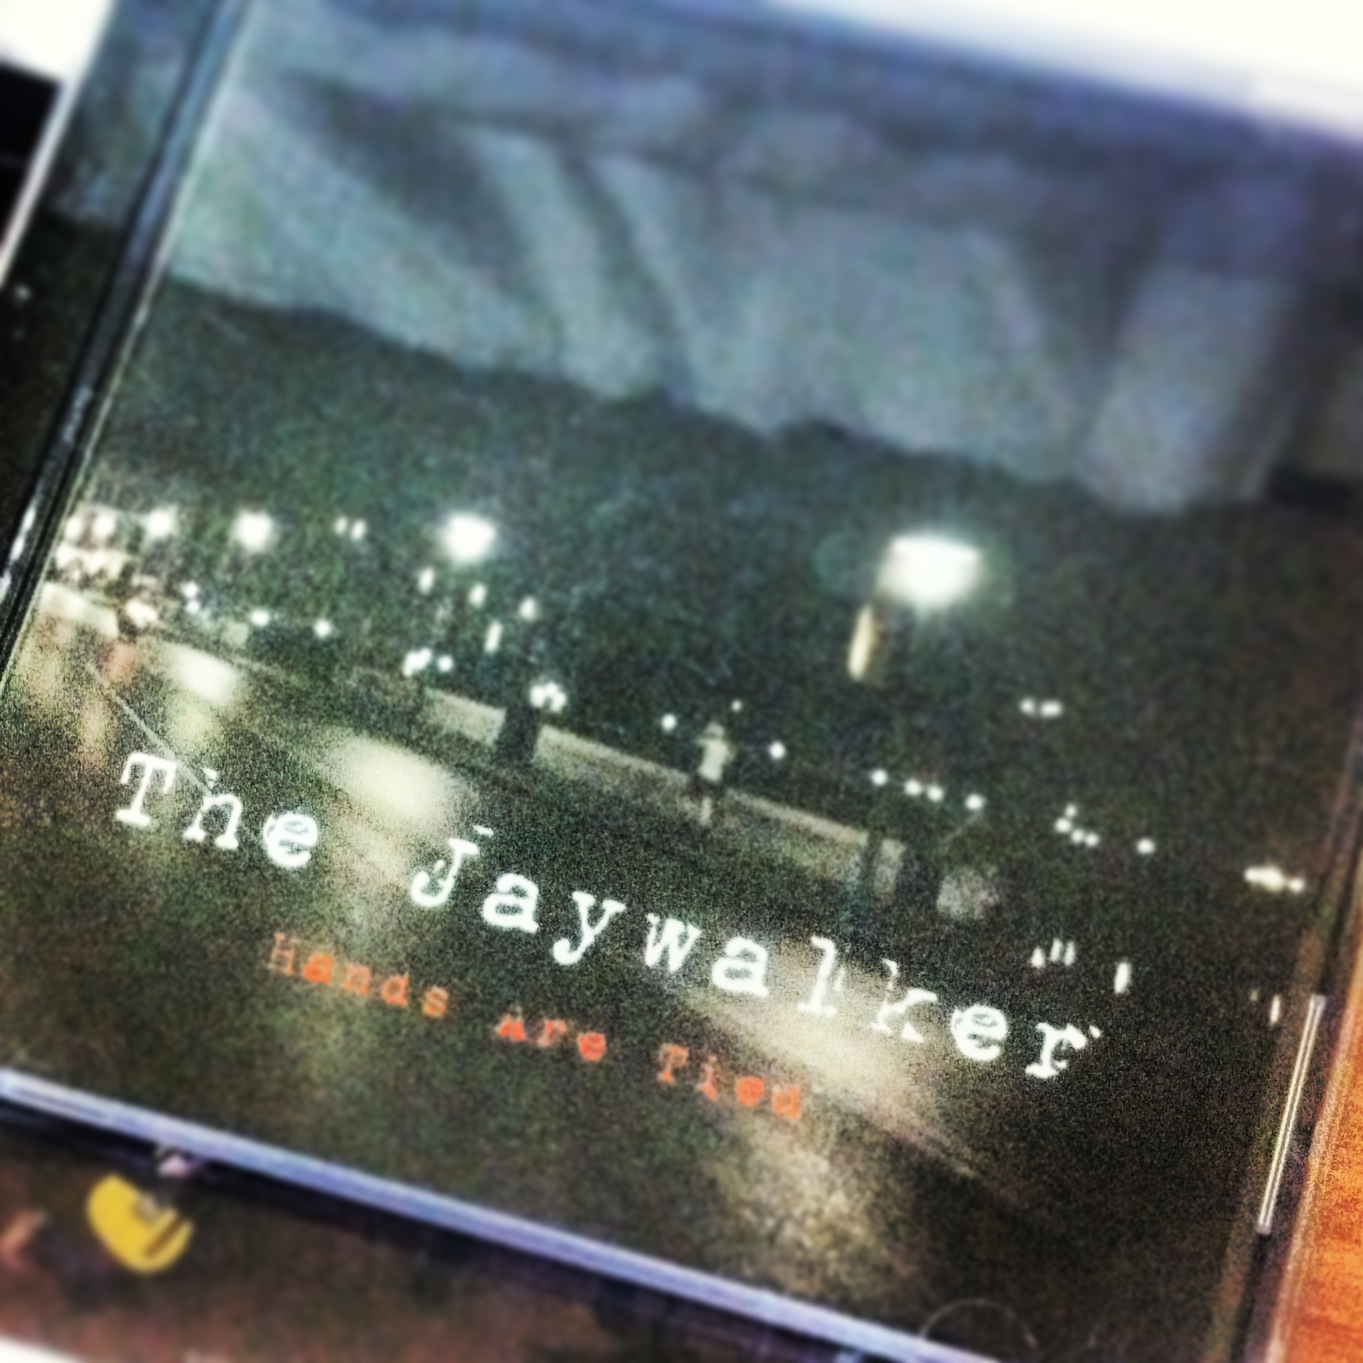 [Review] The Jaywalker [Hands Are Tied]